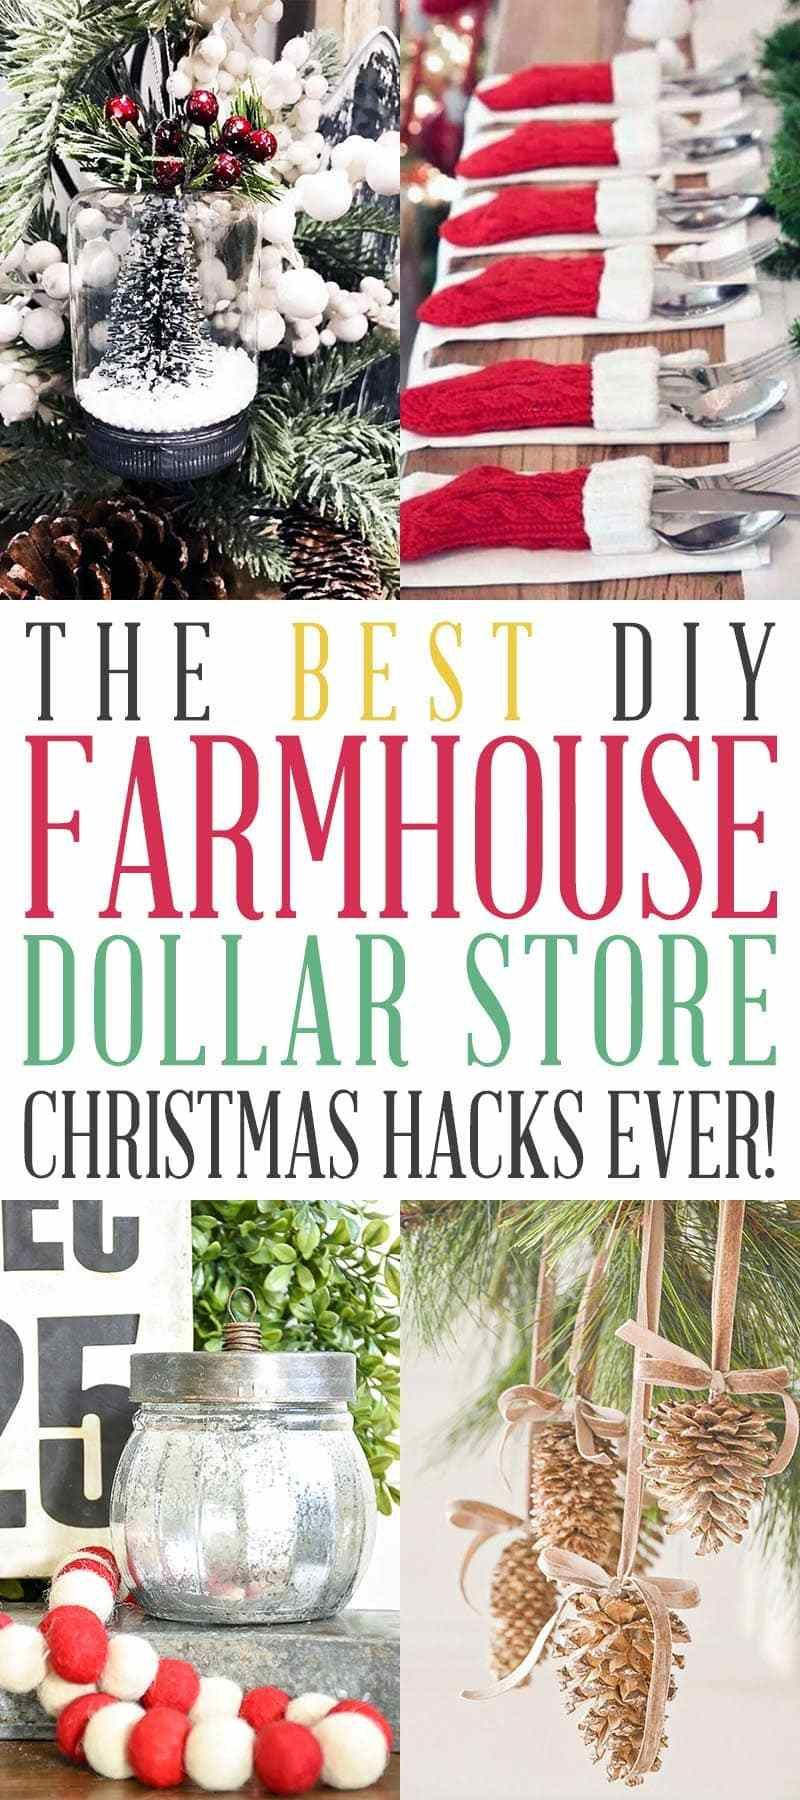 23 diy christmas decorations dollar store ideas